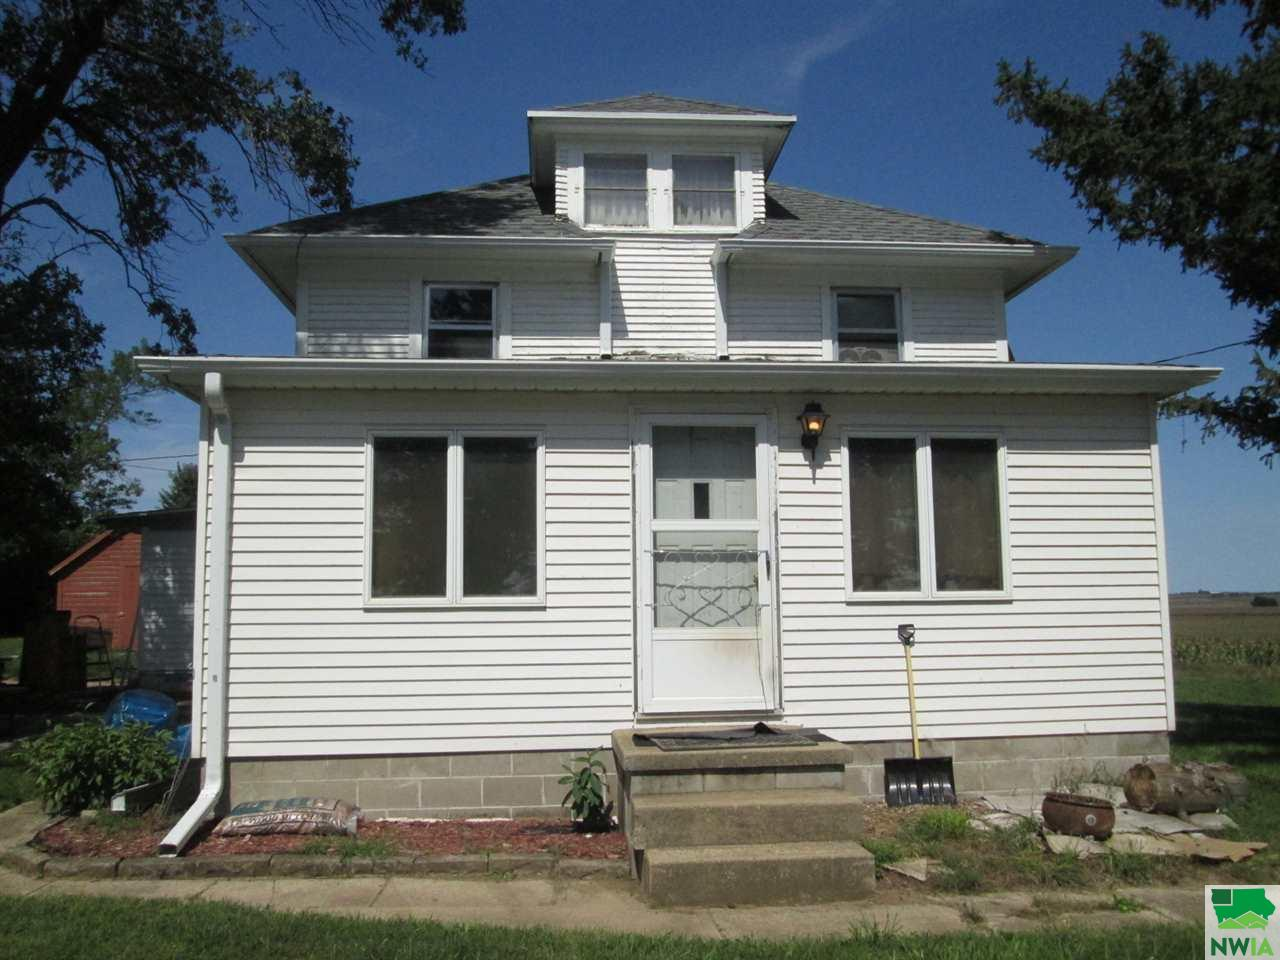 Property for sale at 2119 130th St, Lawton,  IA 51030